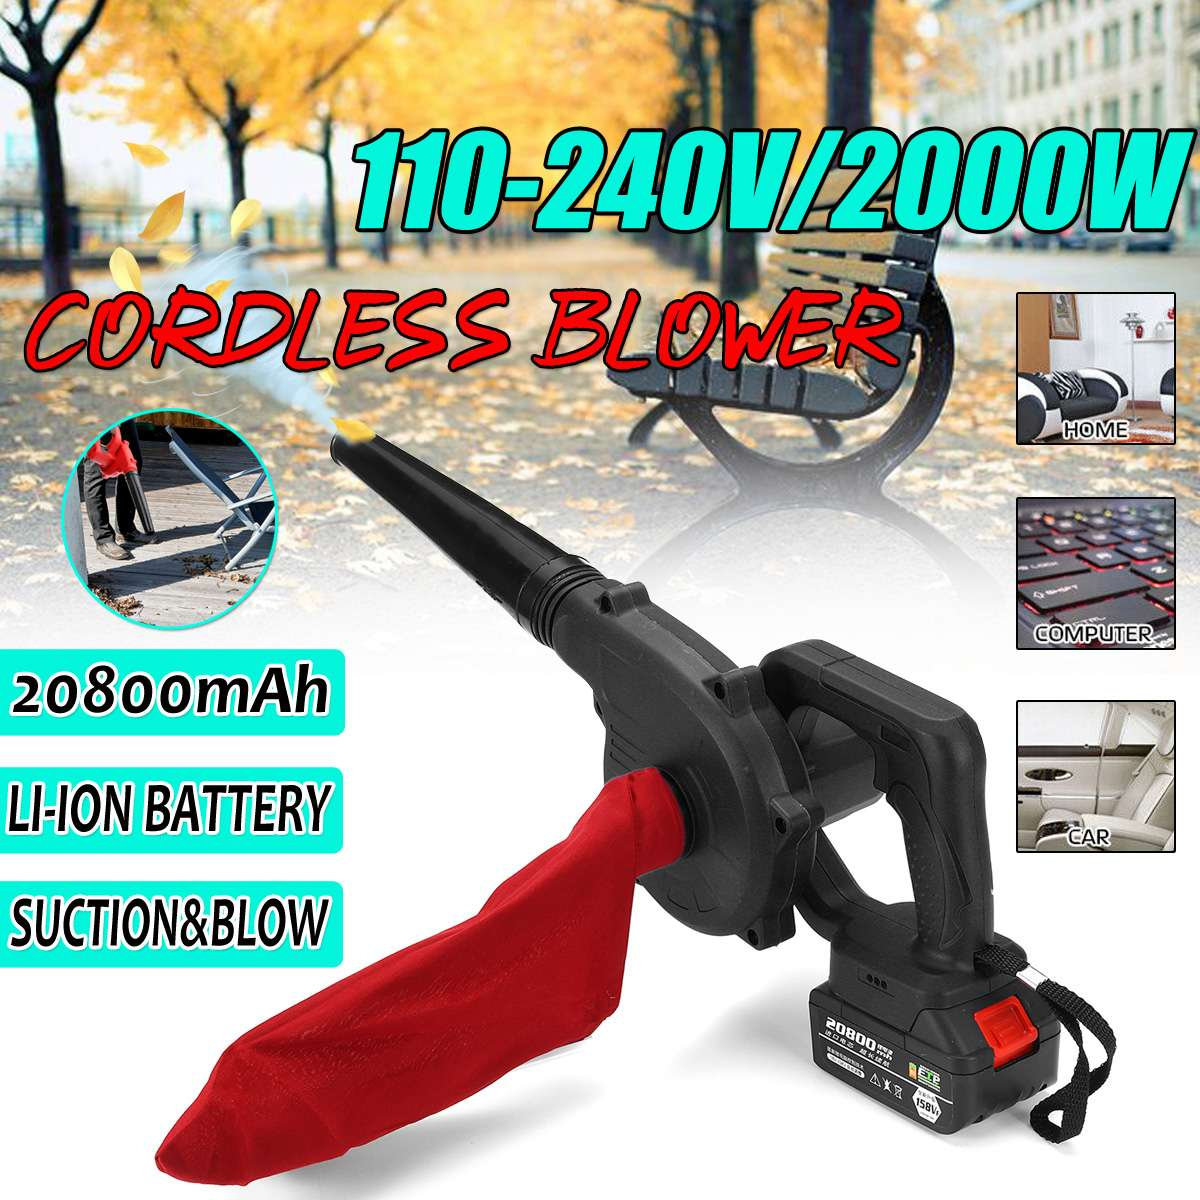 Cordless Electric Air Blower Handheld 110-240V Leaf Blower & Suction 20800mAh Lithium Battery Computer Dust Collector Cleaner